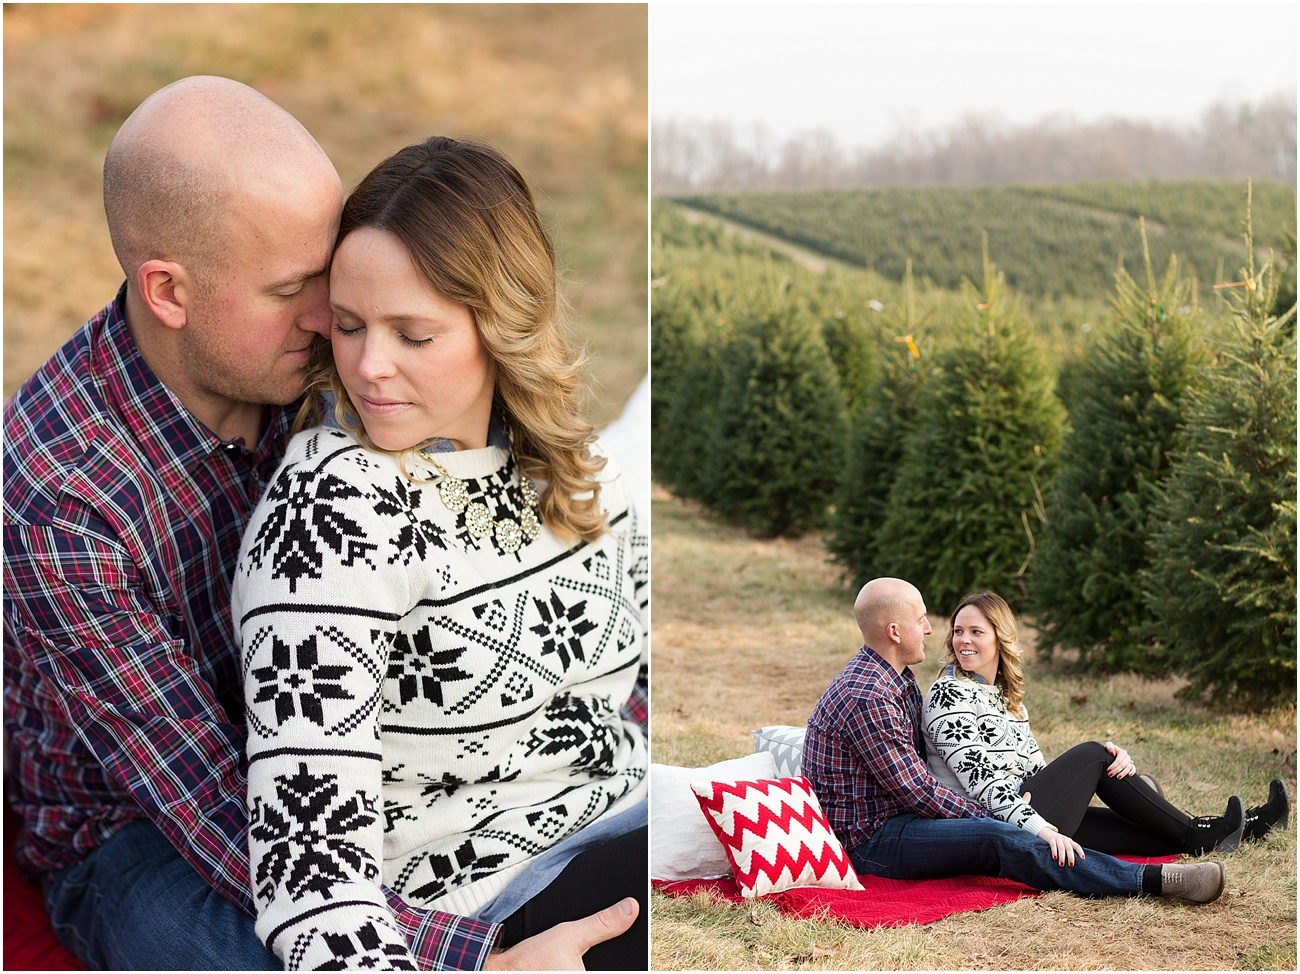 Pine_Valley_Farms_Engagement_Maryland_Wedding_Photographer_0006